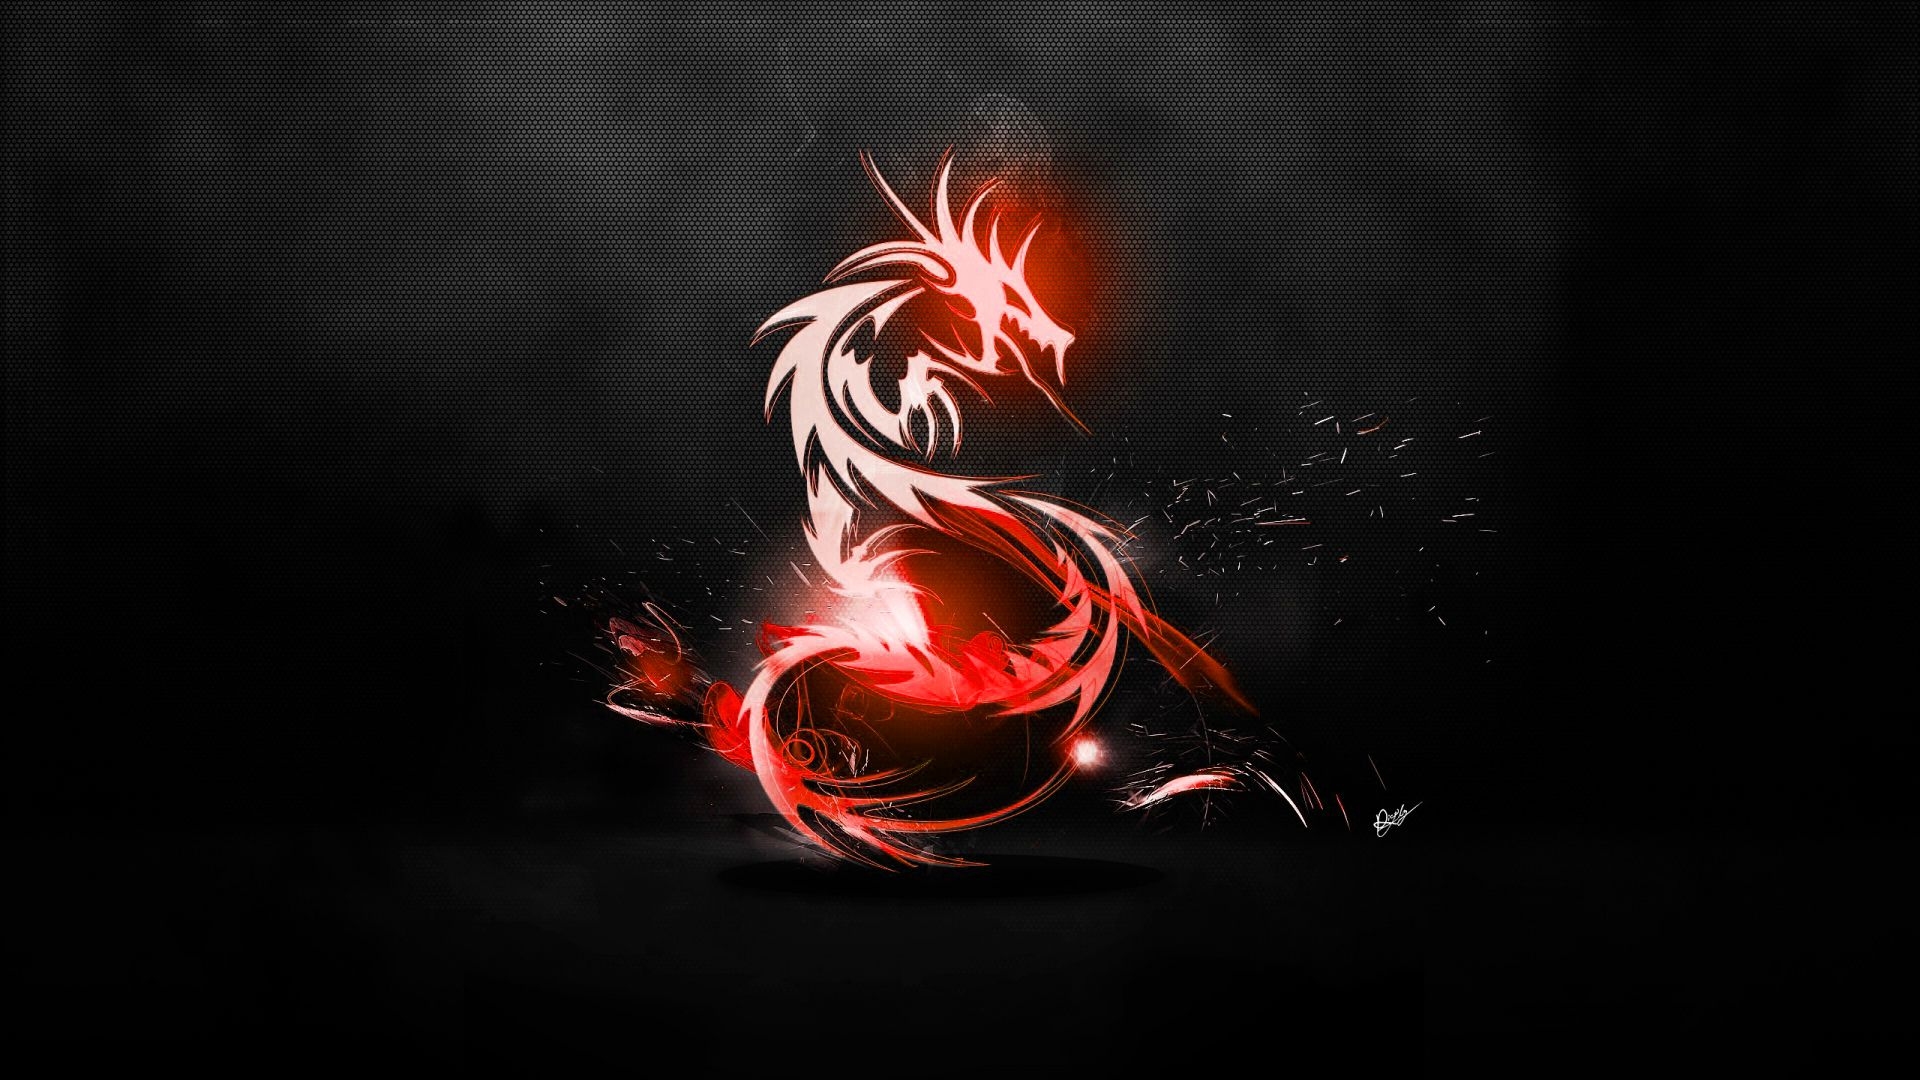 Black And Red Gaming Wallpapers Top Free Black And Red Gaming Backgrounds Wallpaperaccess